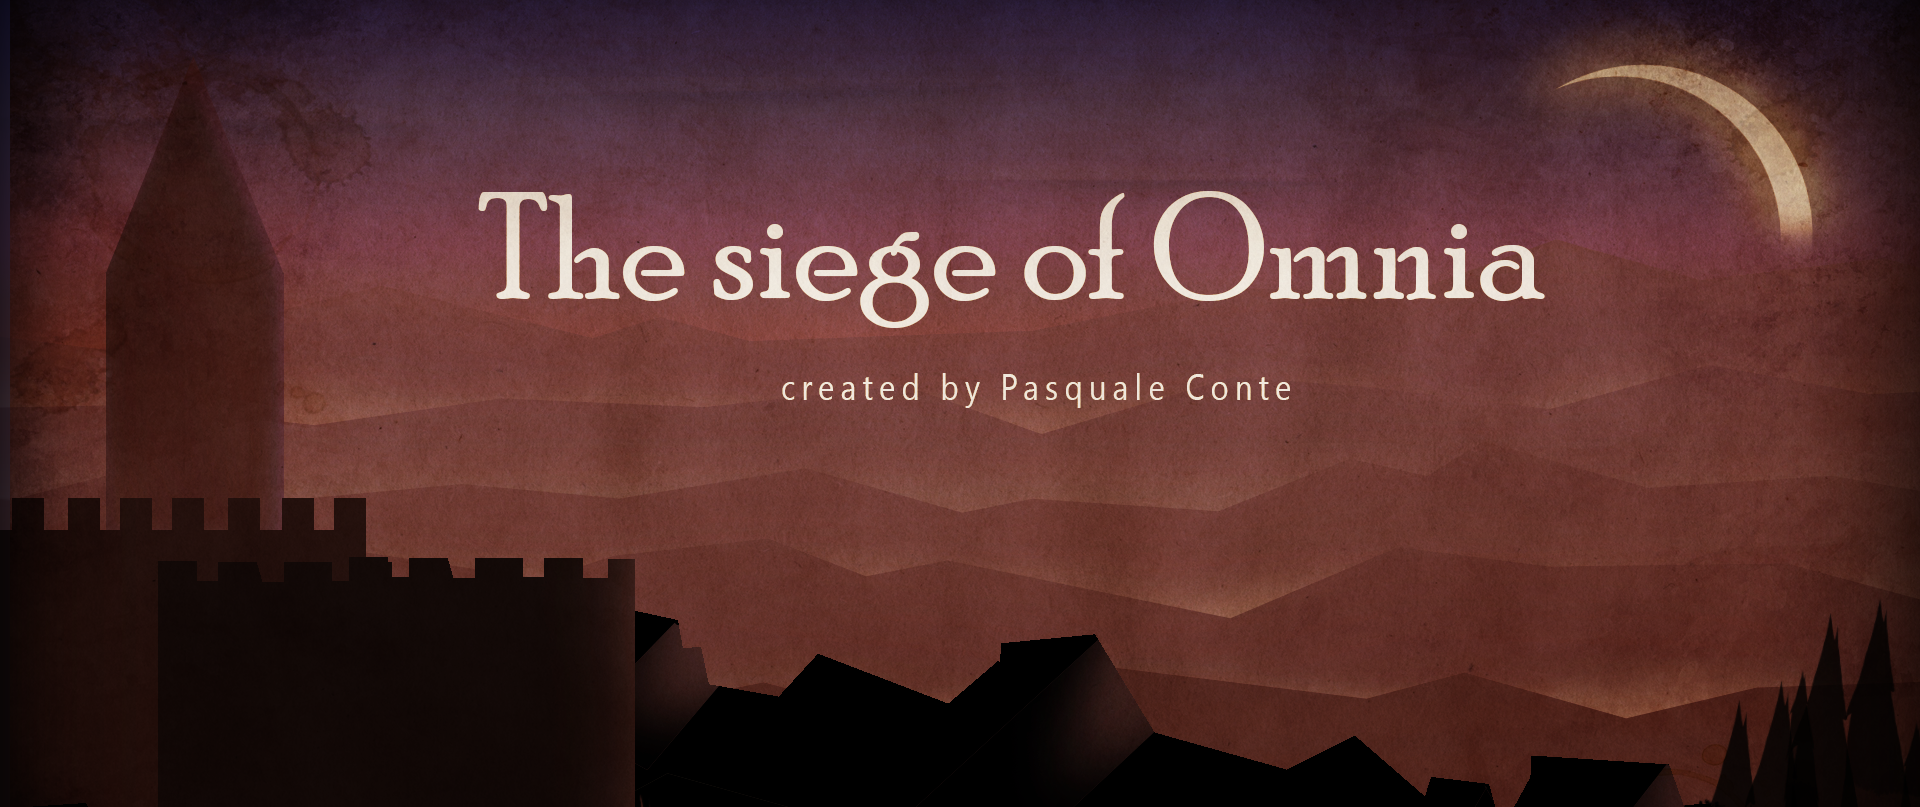 The Siege of Omia